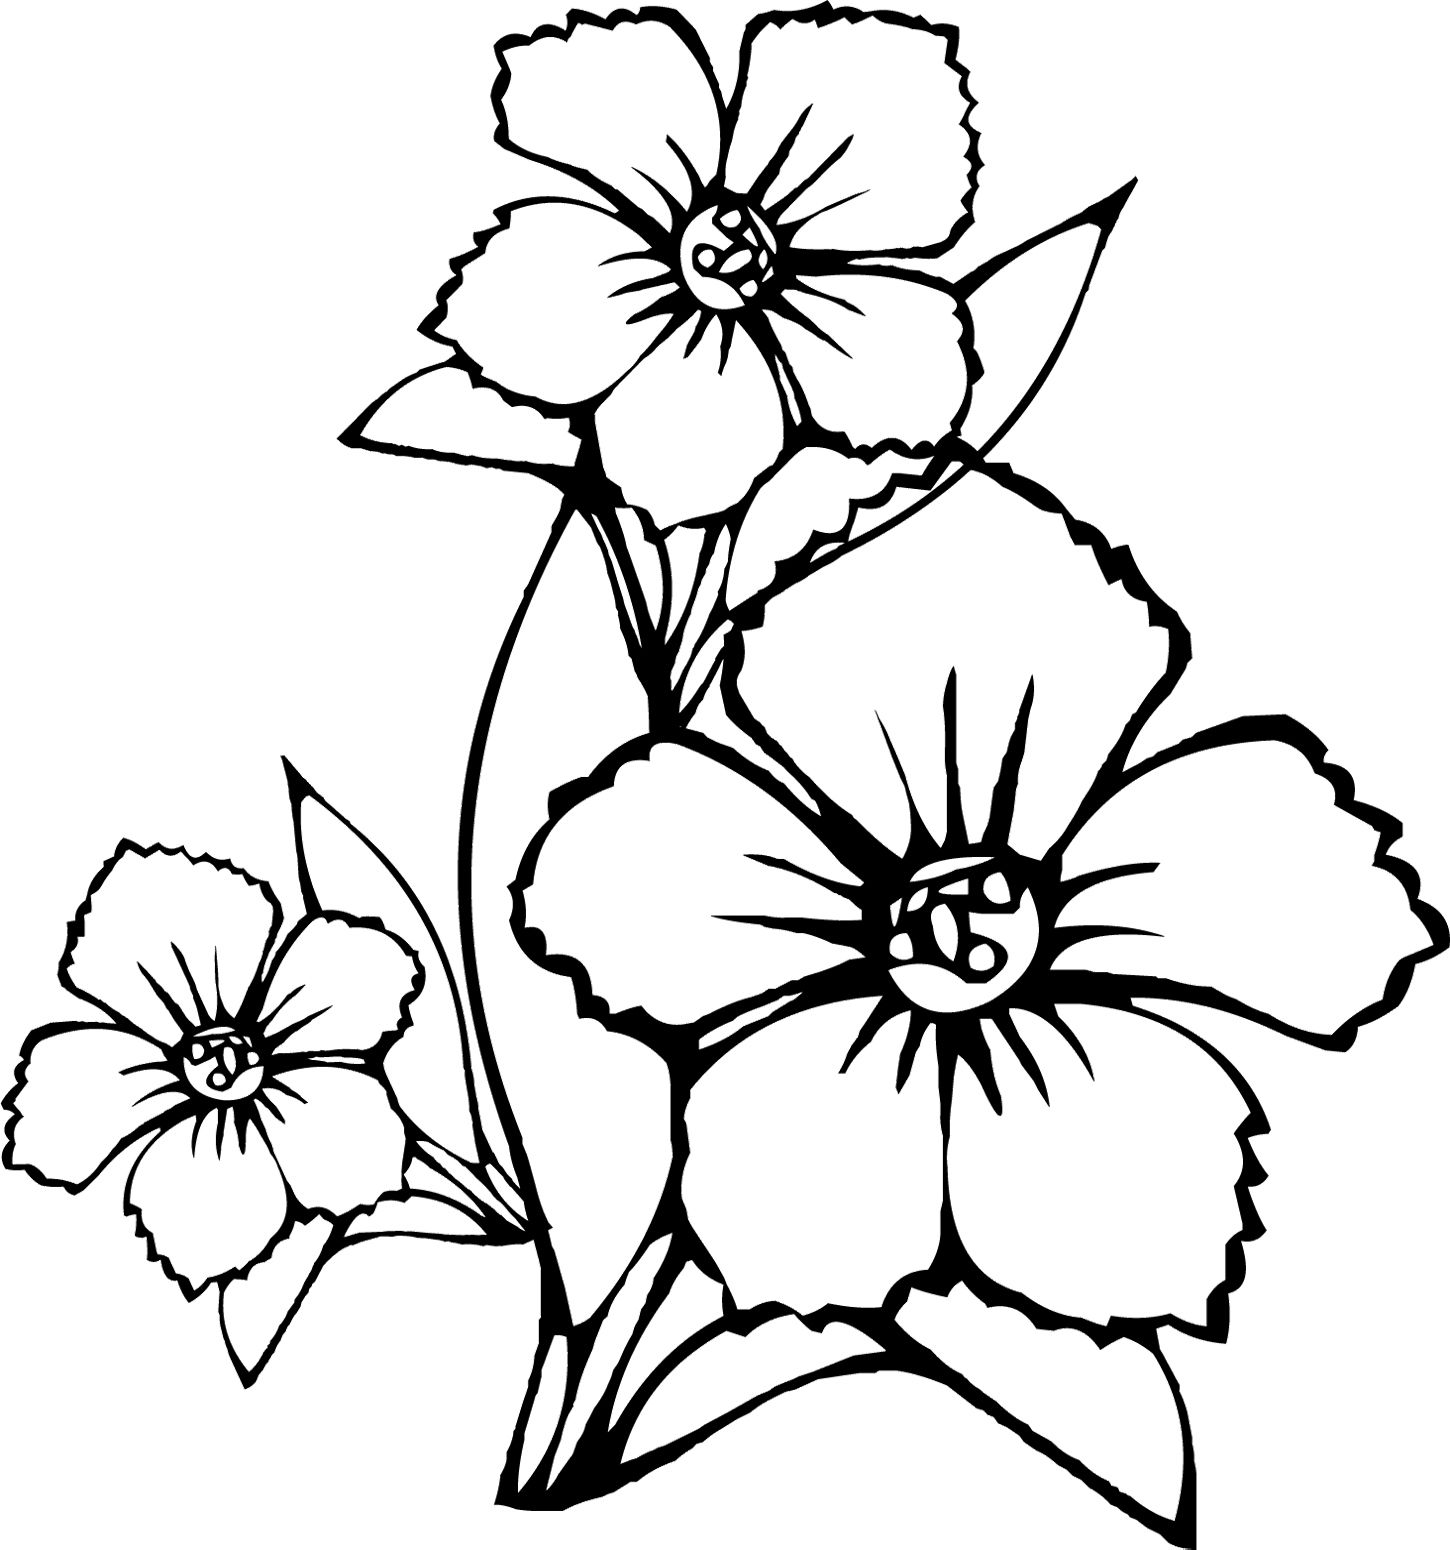 Colouring in pictures of flowers - Coloring Pages Of Flowers Coloring For Kids Online Coloring